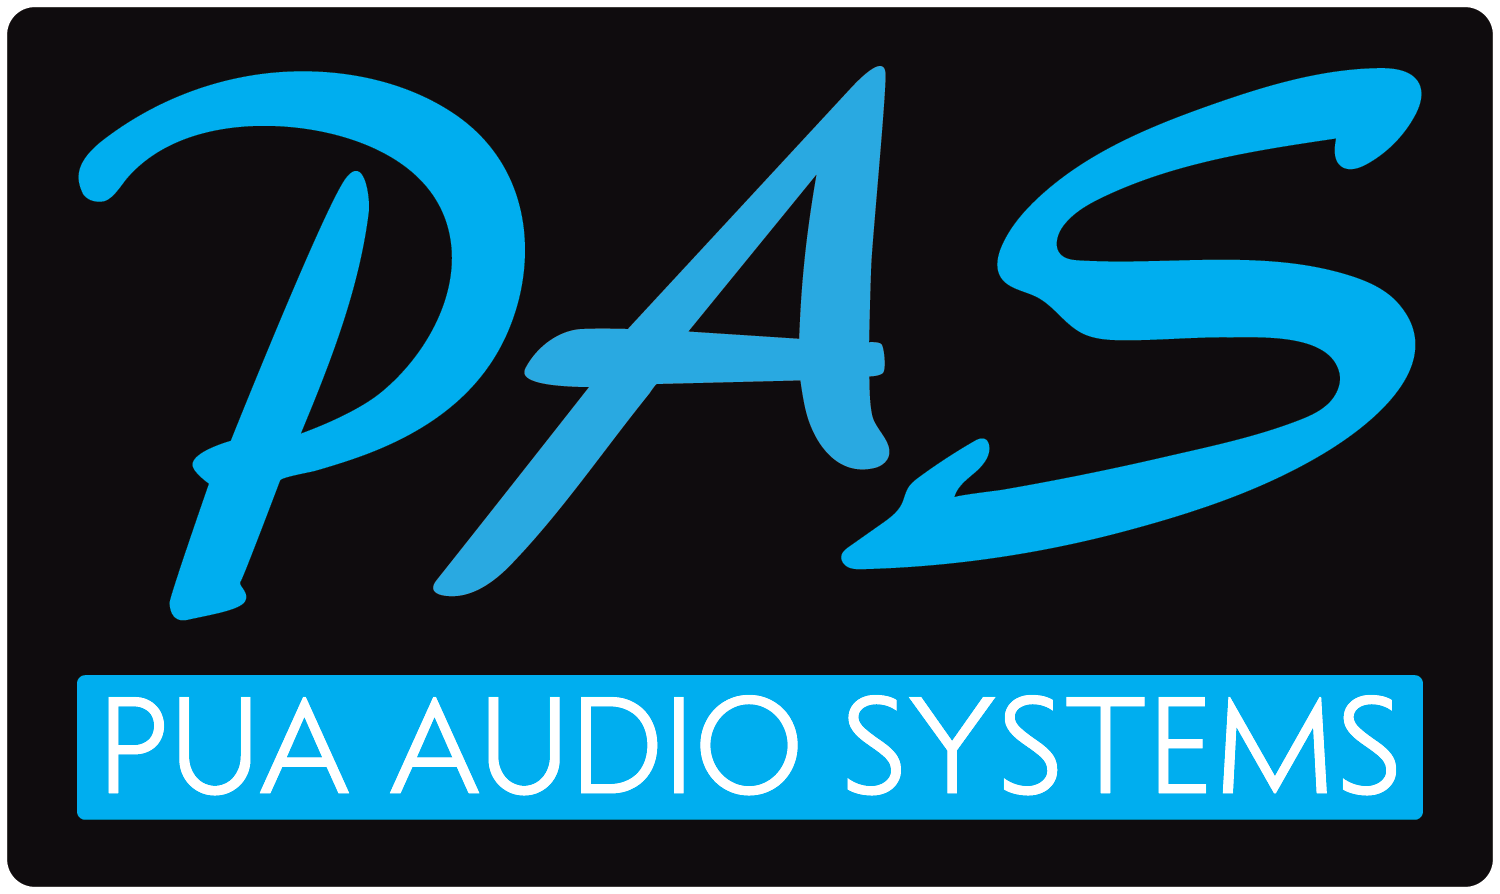 PUA-Audio-Systems-Logo-Lady-Lex-Productions-Branding.png